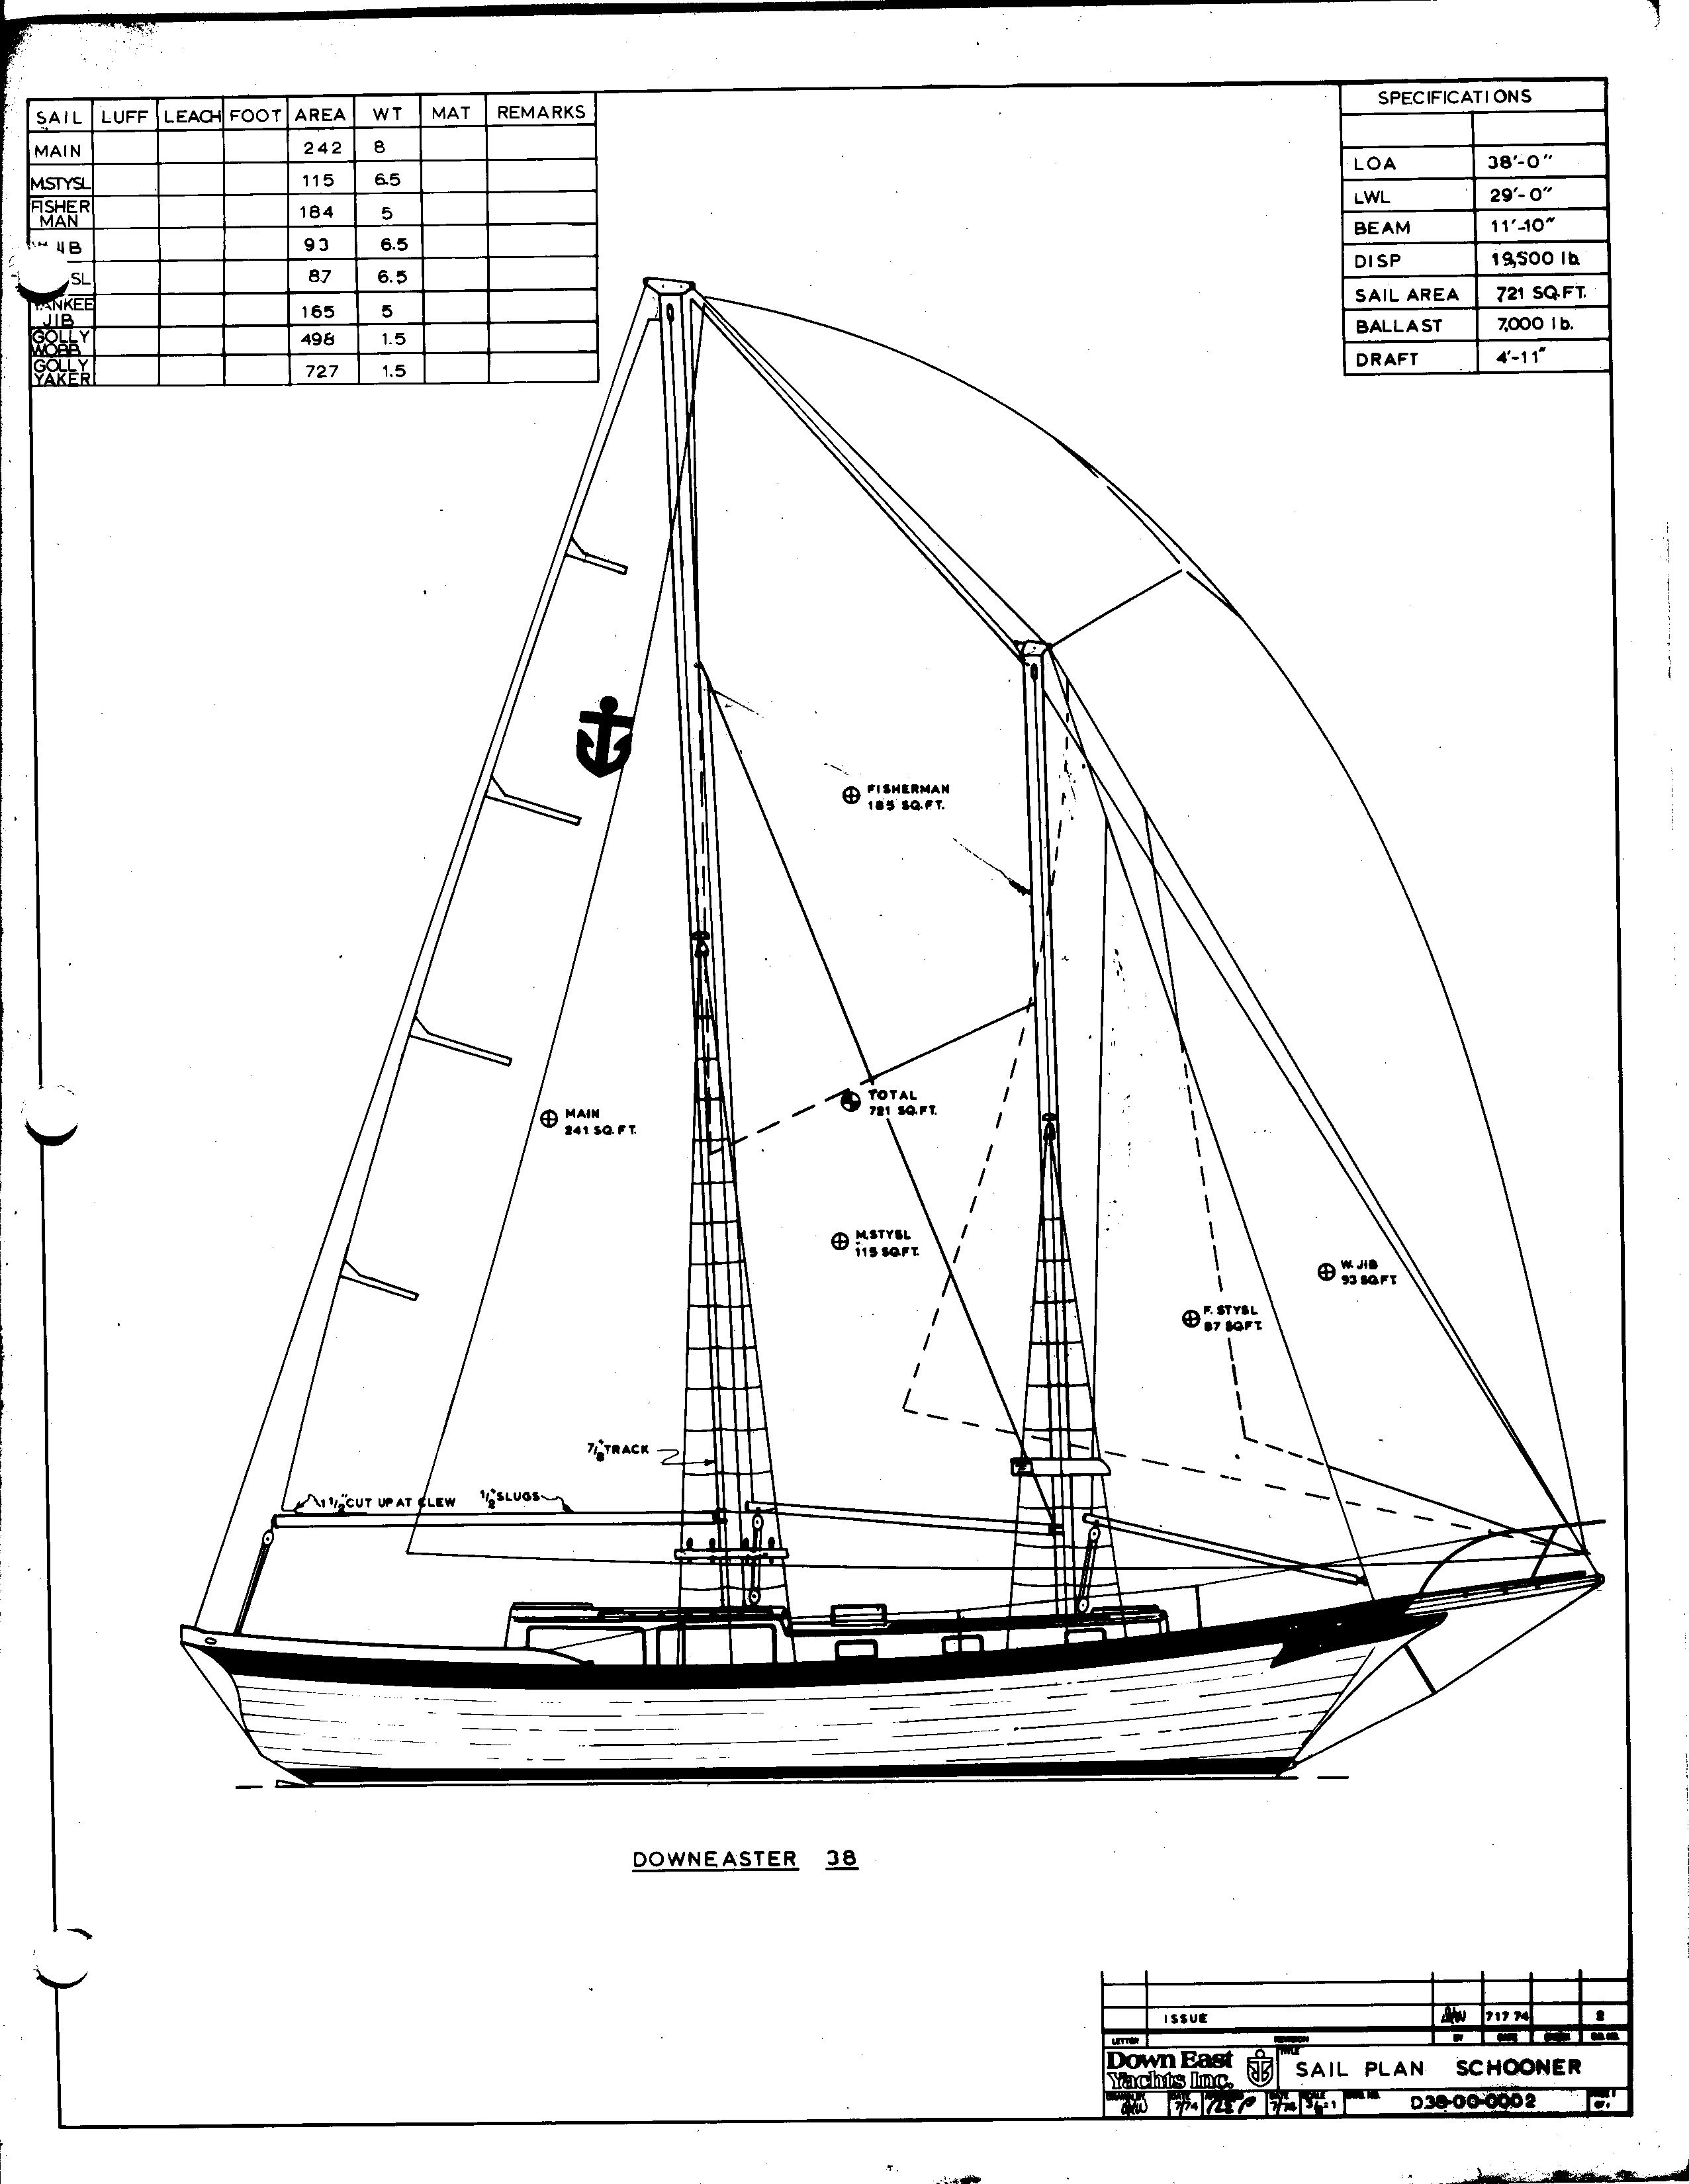 De38 Line Drawings Downeaster Yachts